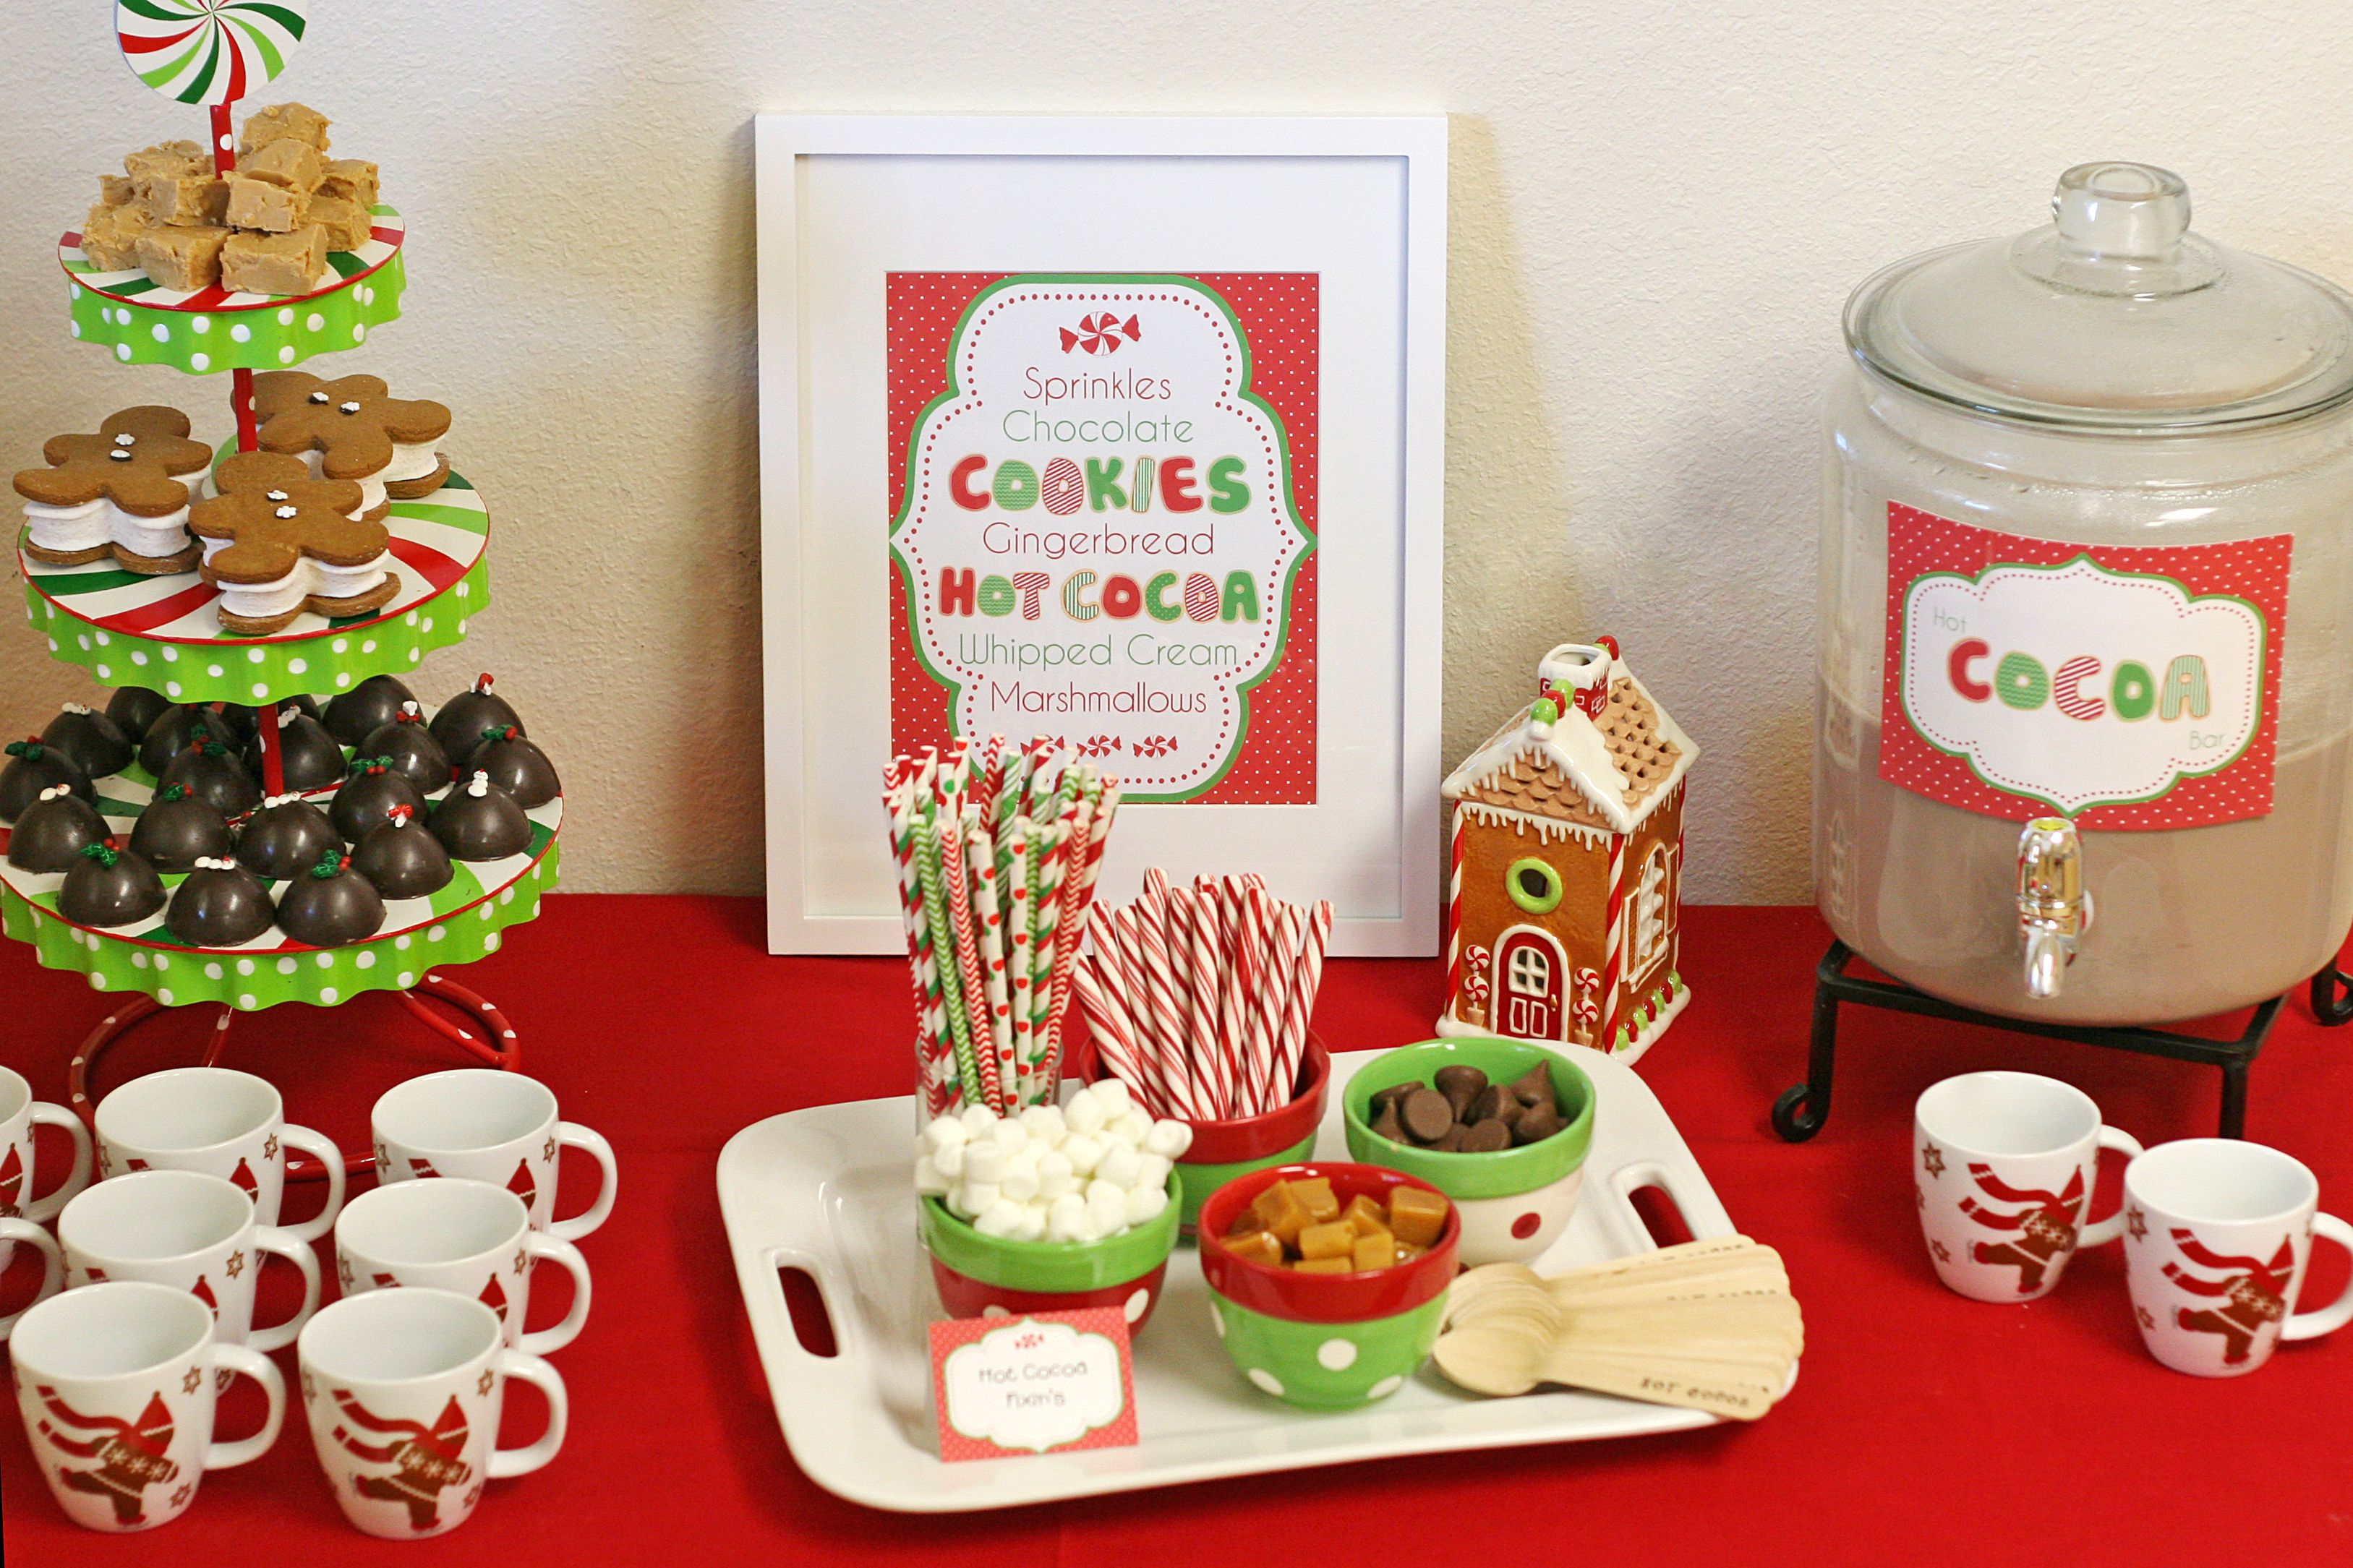 Christmas dessert table decoration ideas - Auntie Bea S Bakery 12 Days Of Christmas Cookies Hot Cocoa Recipe